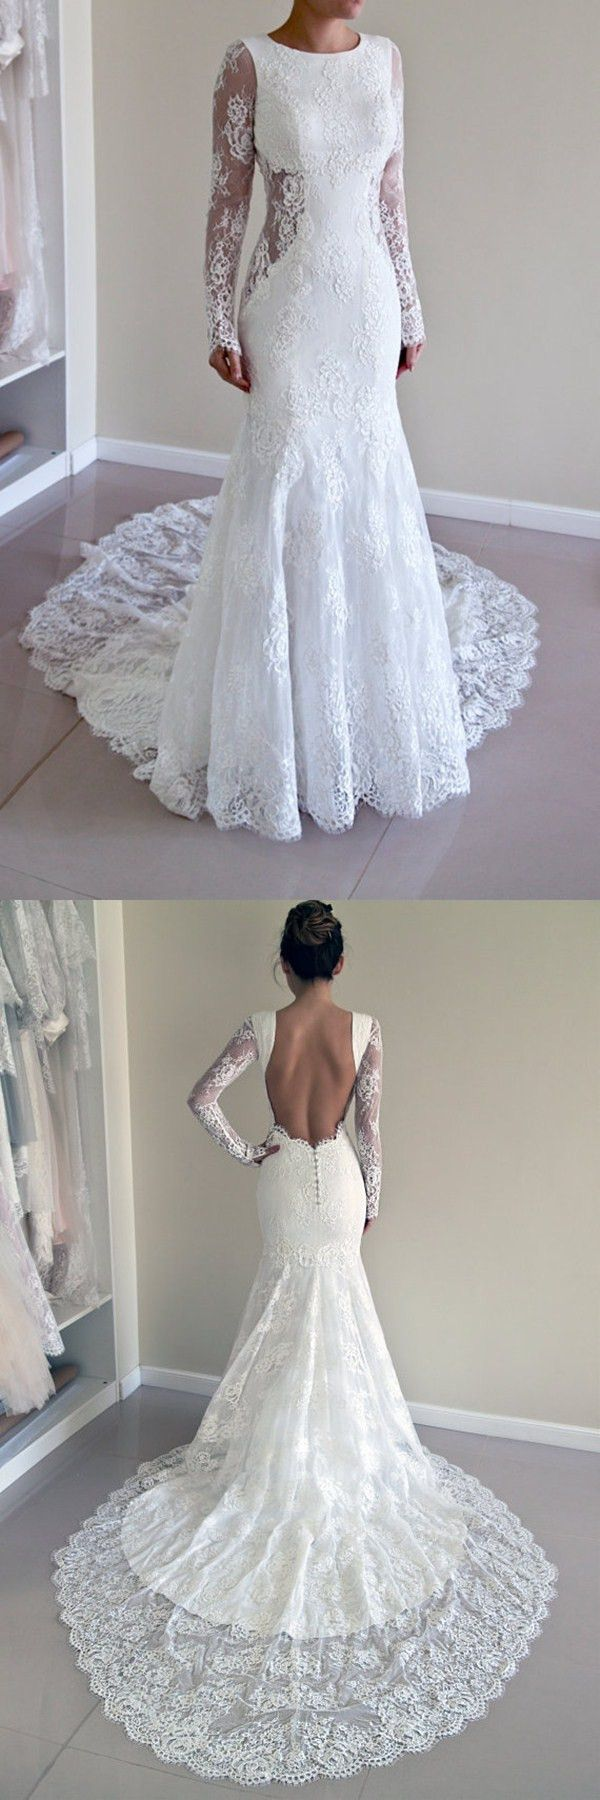 Charming scoop open back sheath lace mermaid wedding dress with long